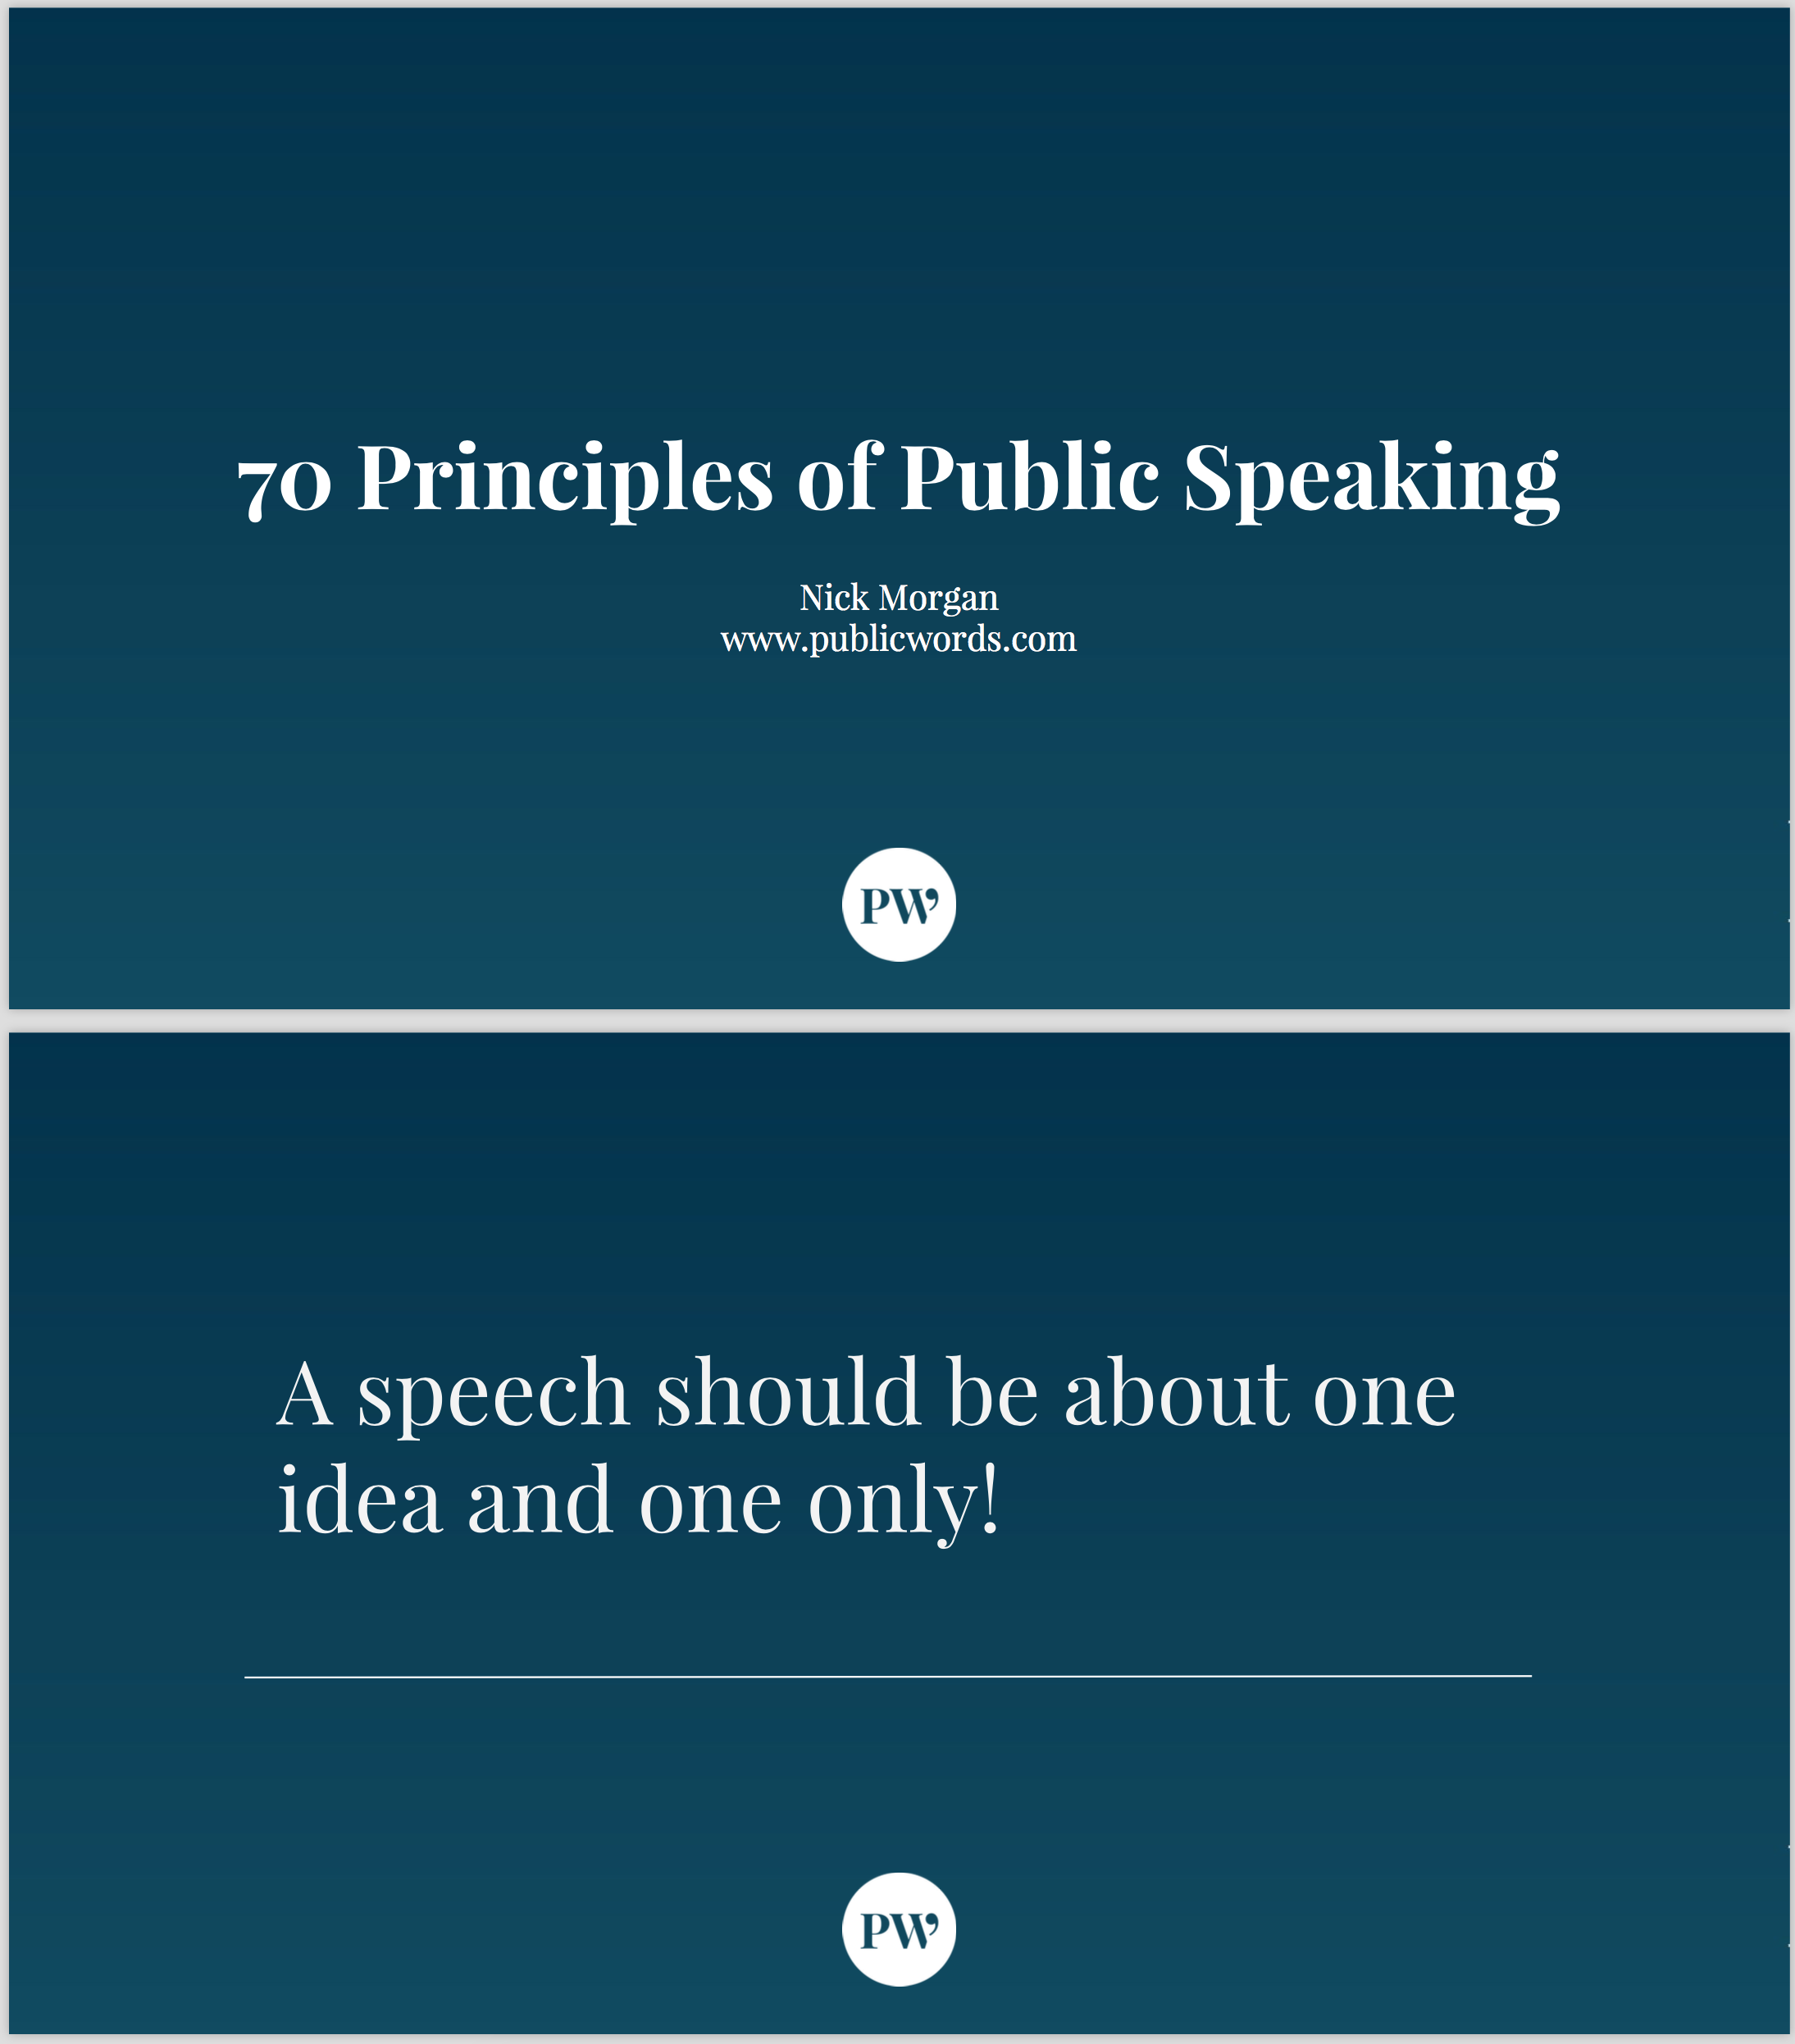 sp180 principles of public speaking View essay - public speech2 from english 120 at ashworth college sp180  principles of public speaking assignment 7 august 19, 2015 title: why  banning.